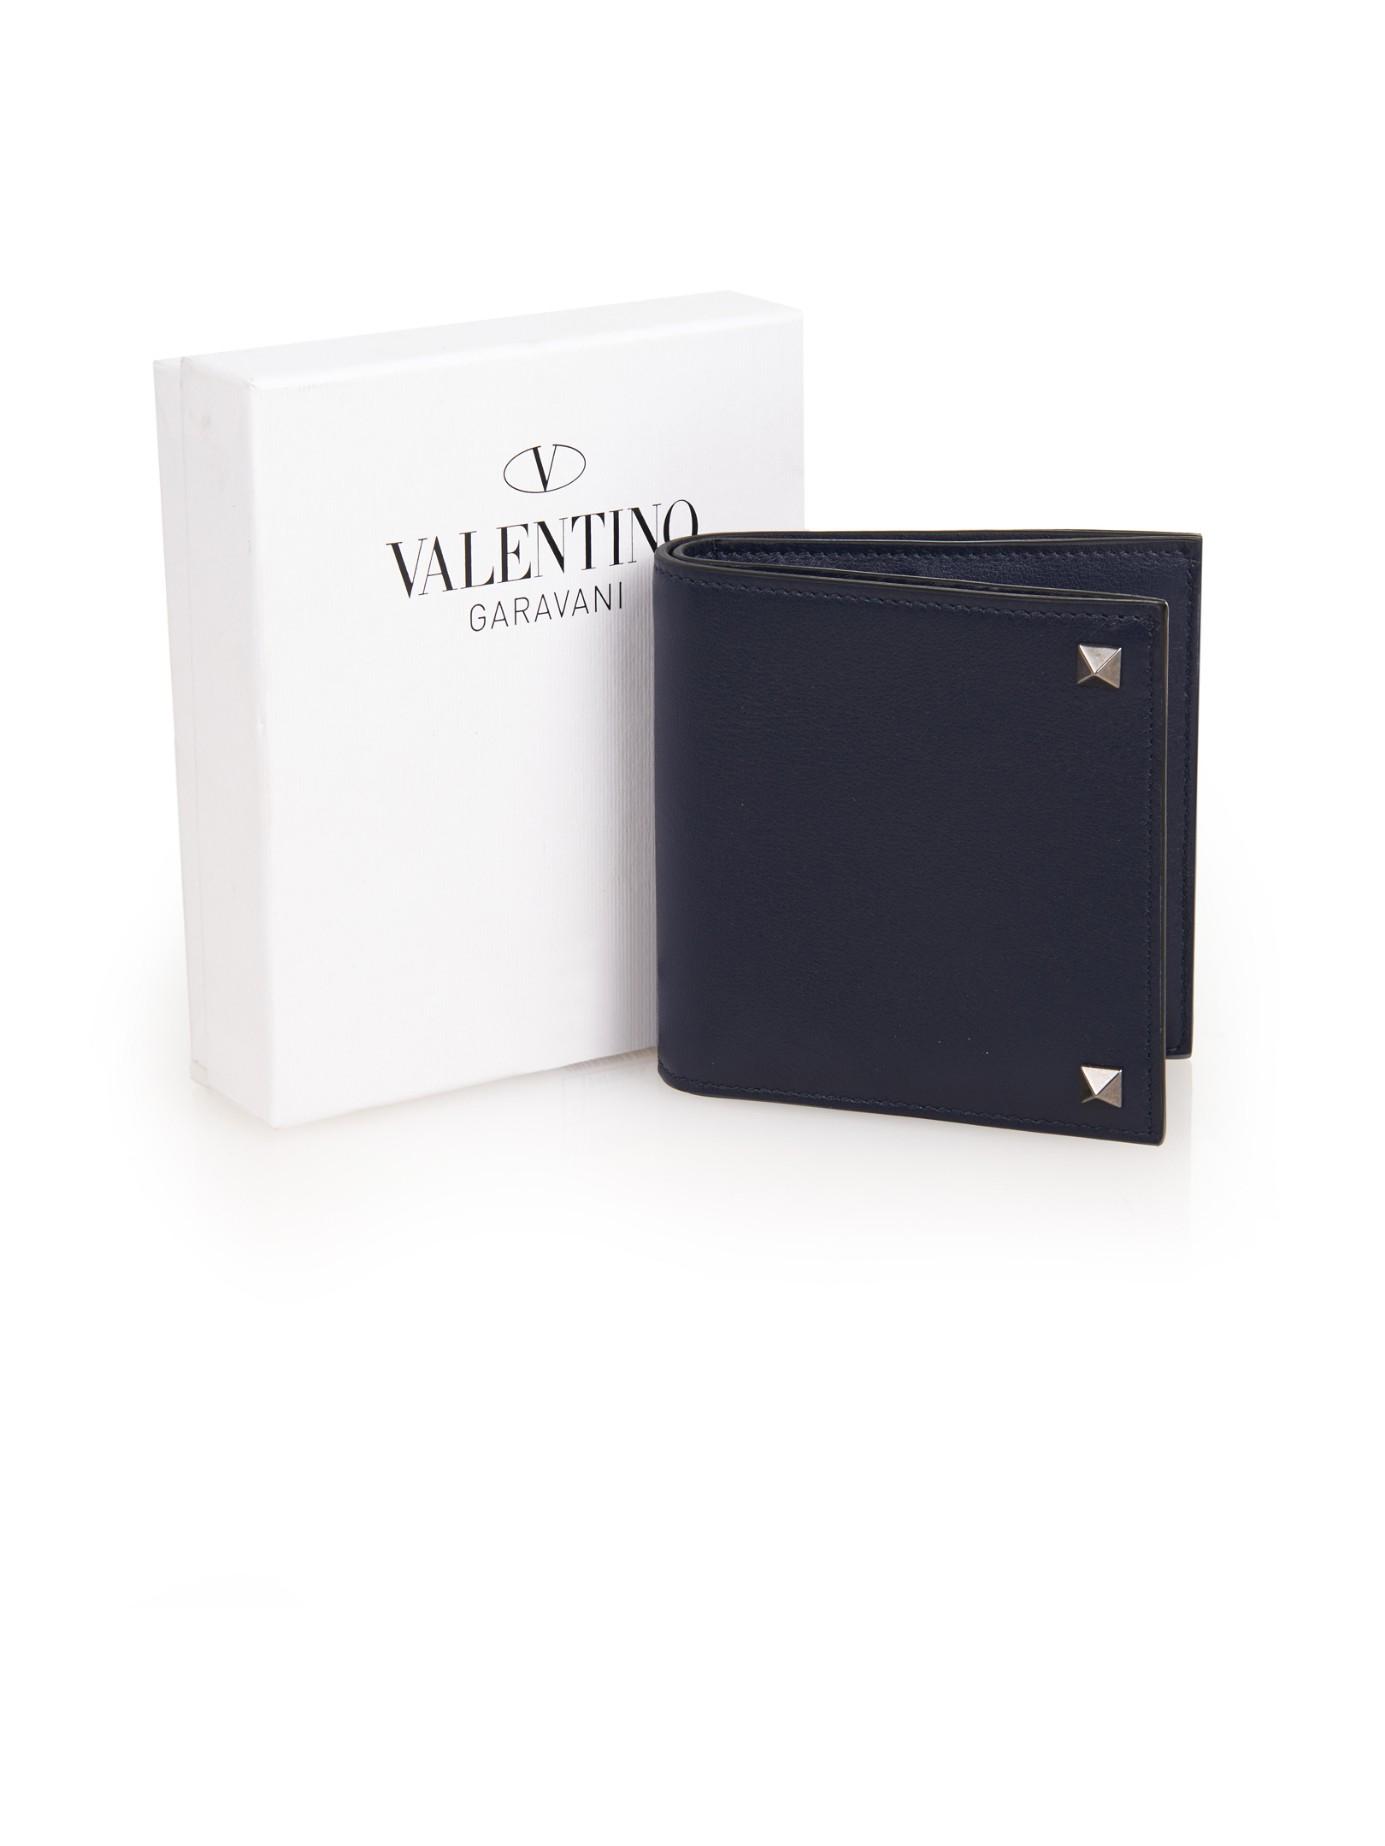 Lyst - Valentino Rockstud Leather Wallet in Blue for Men